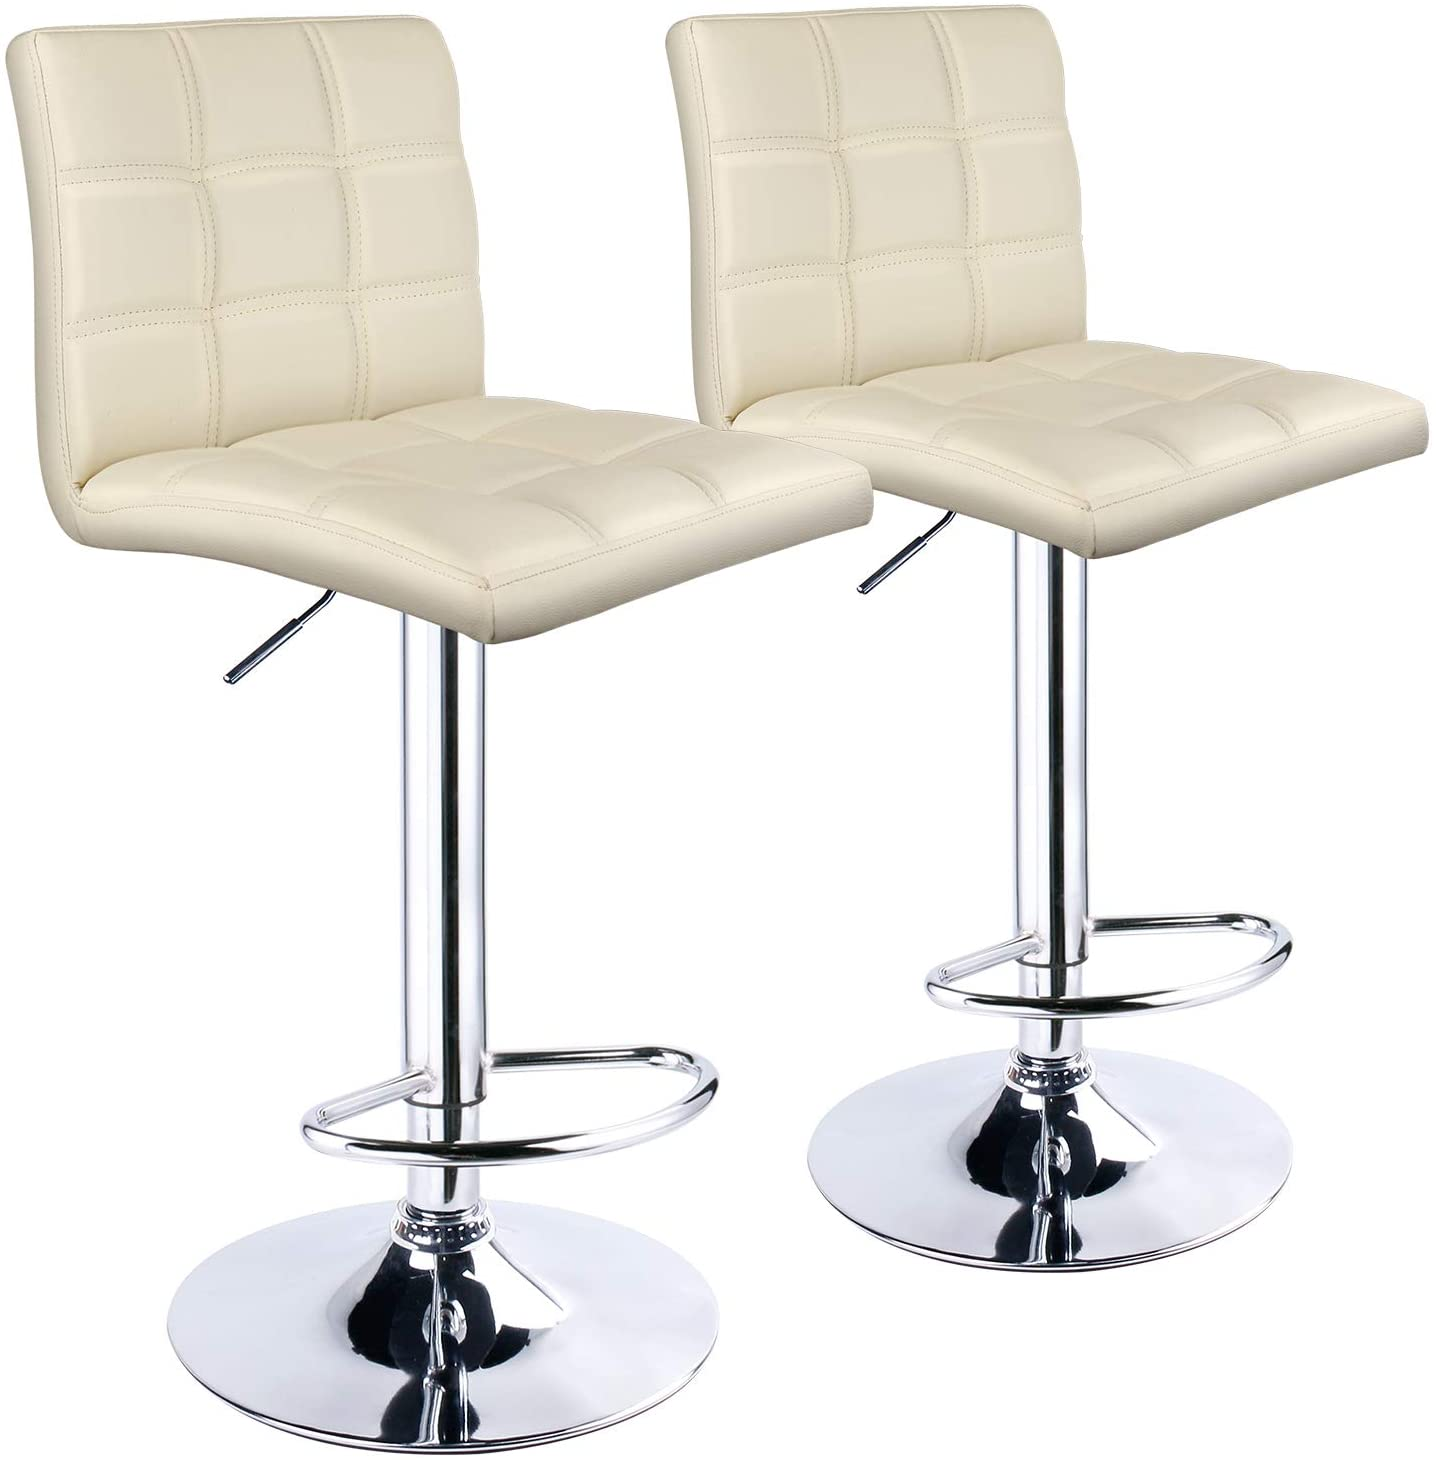 Leopard Adjustable Bar Stools Square Back, PU Leather Padded with Back, Set of 2 (Cream)